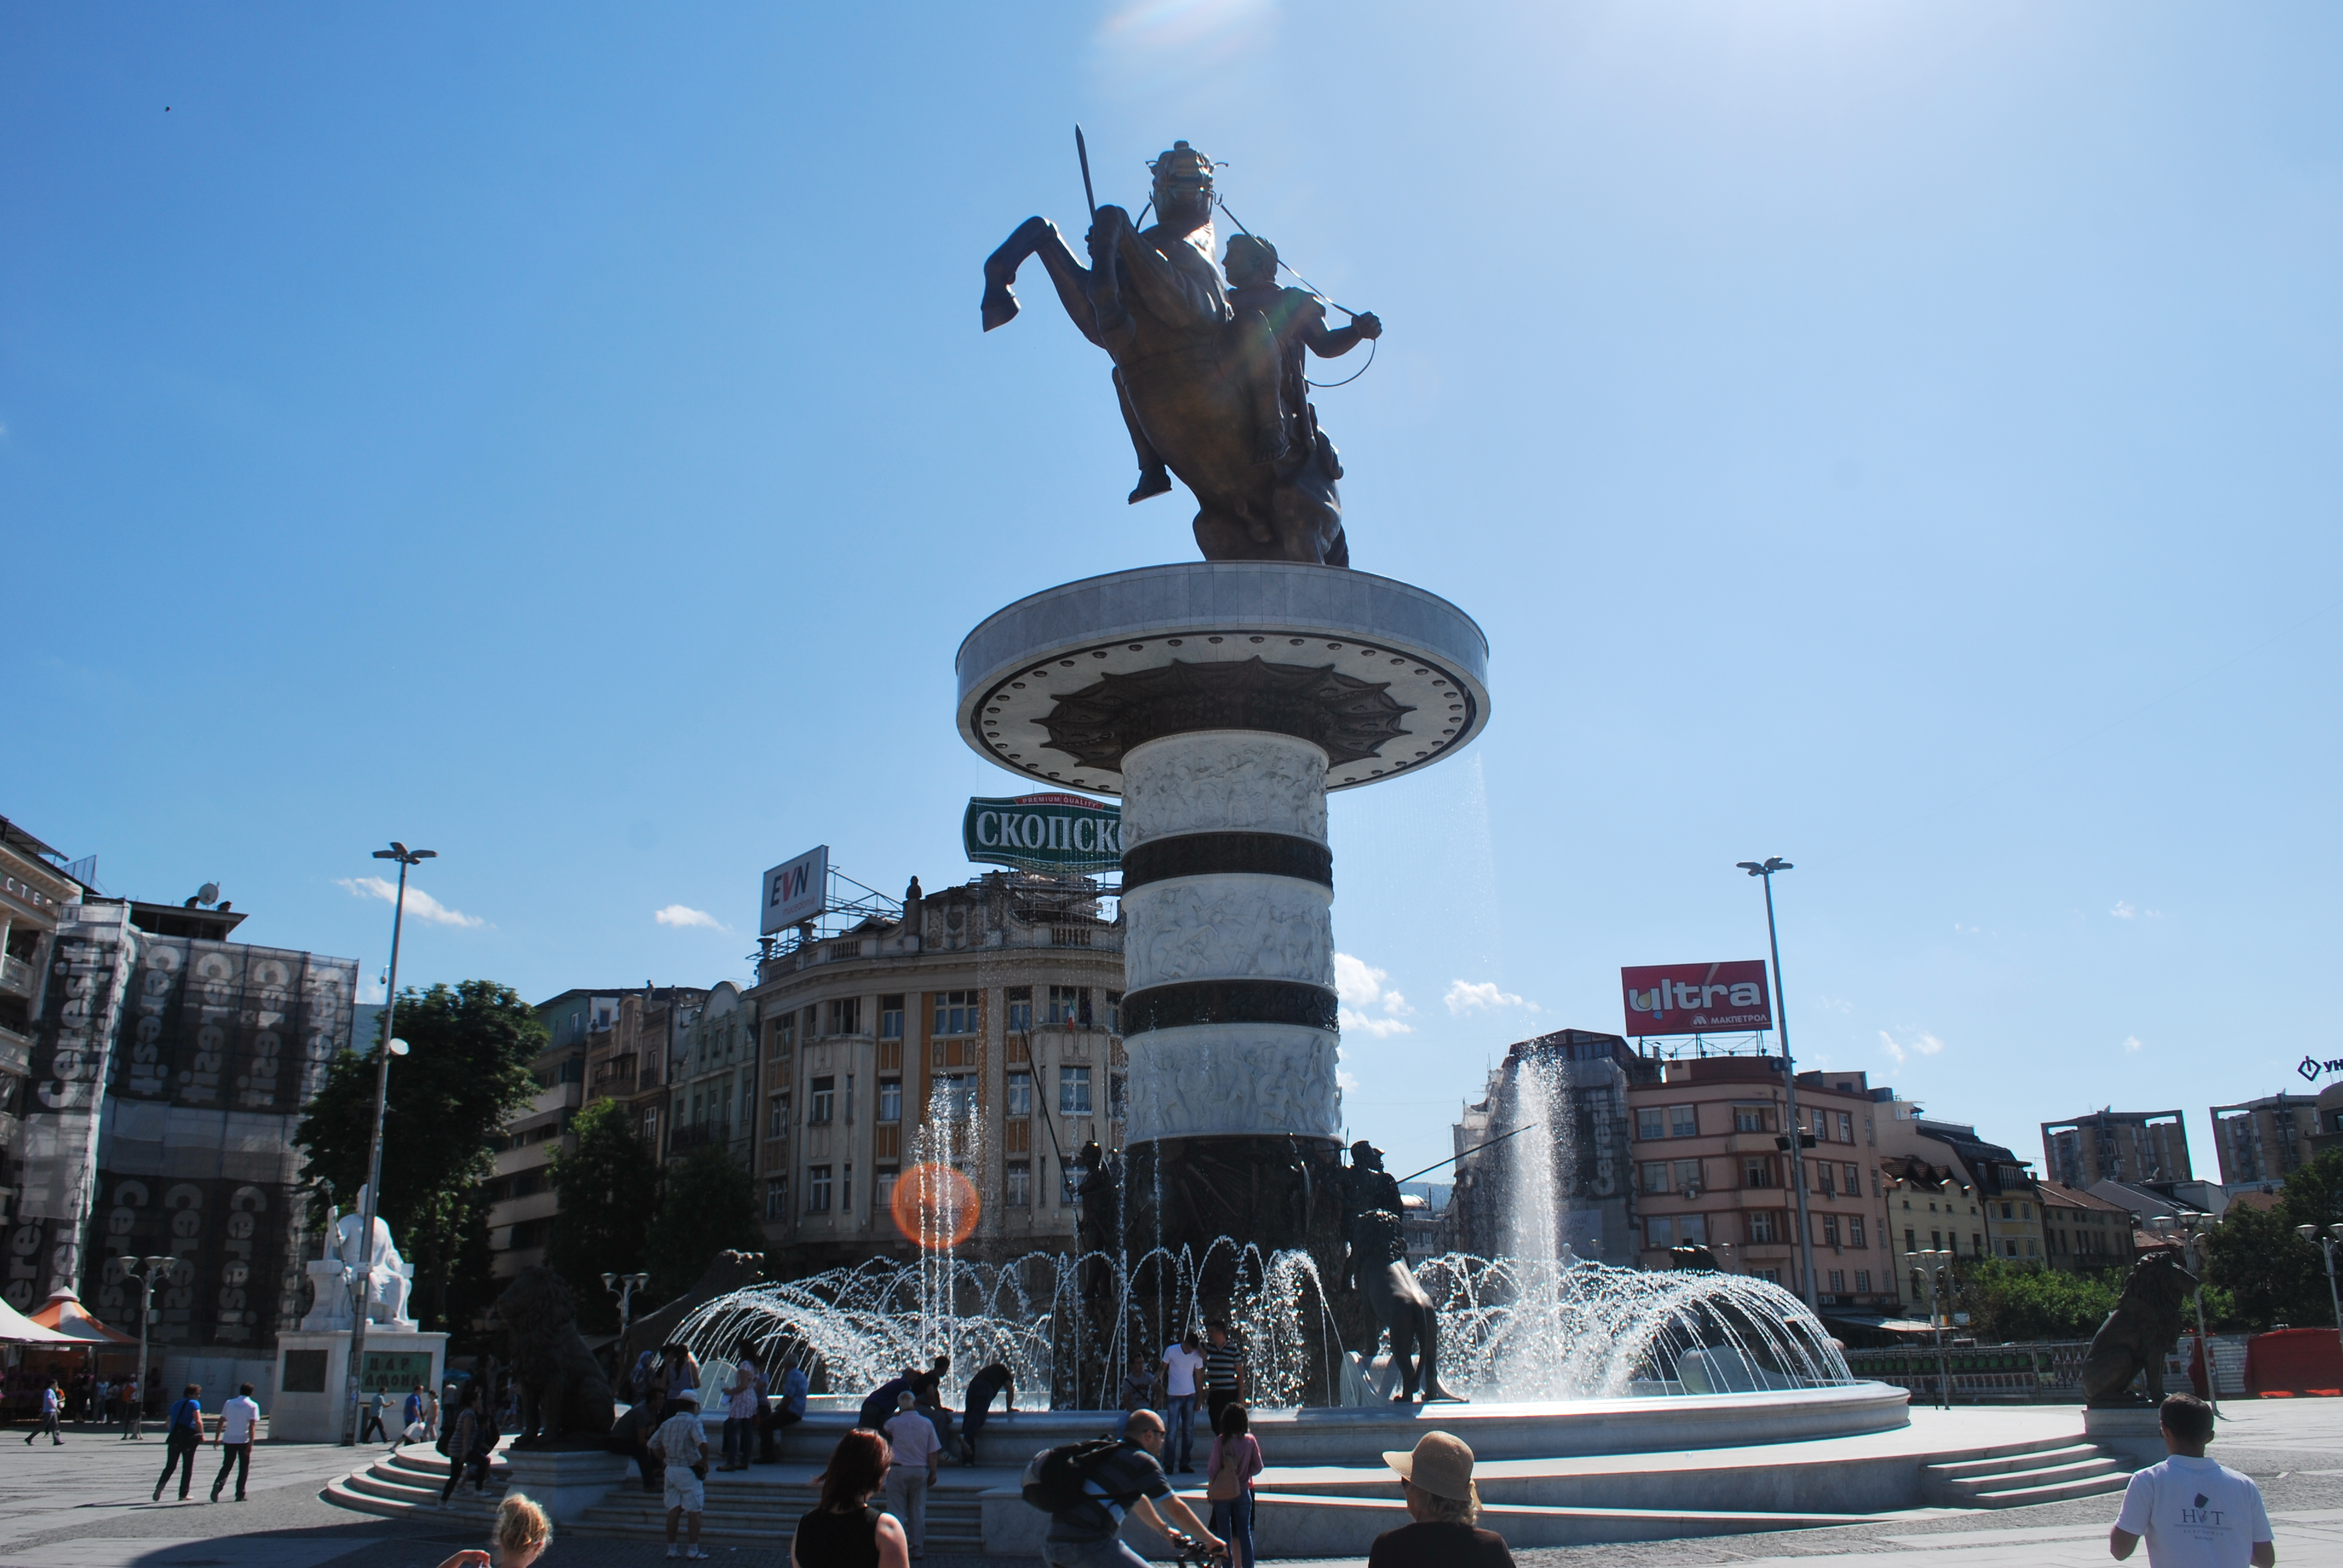 essay about skopje Most of us are probably familiar about what essays are i would also have to assume that most of us have already written essays one even when we were younger we were either tasked by our teacher.